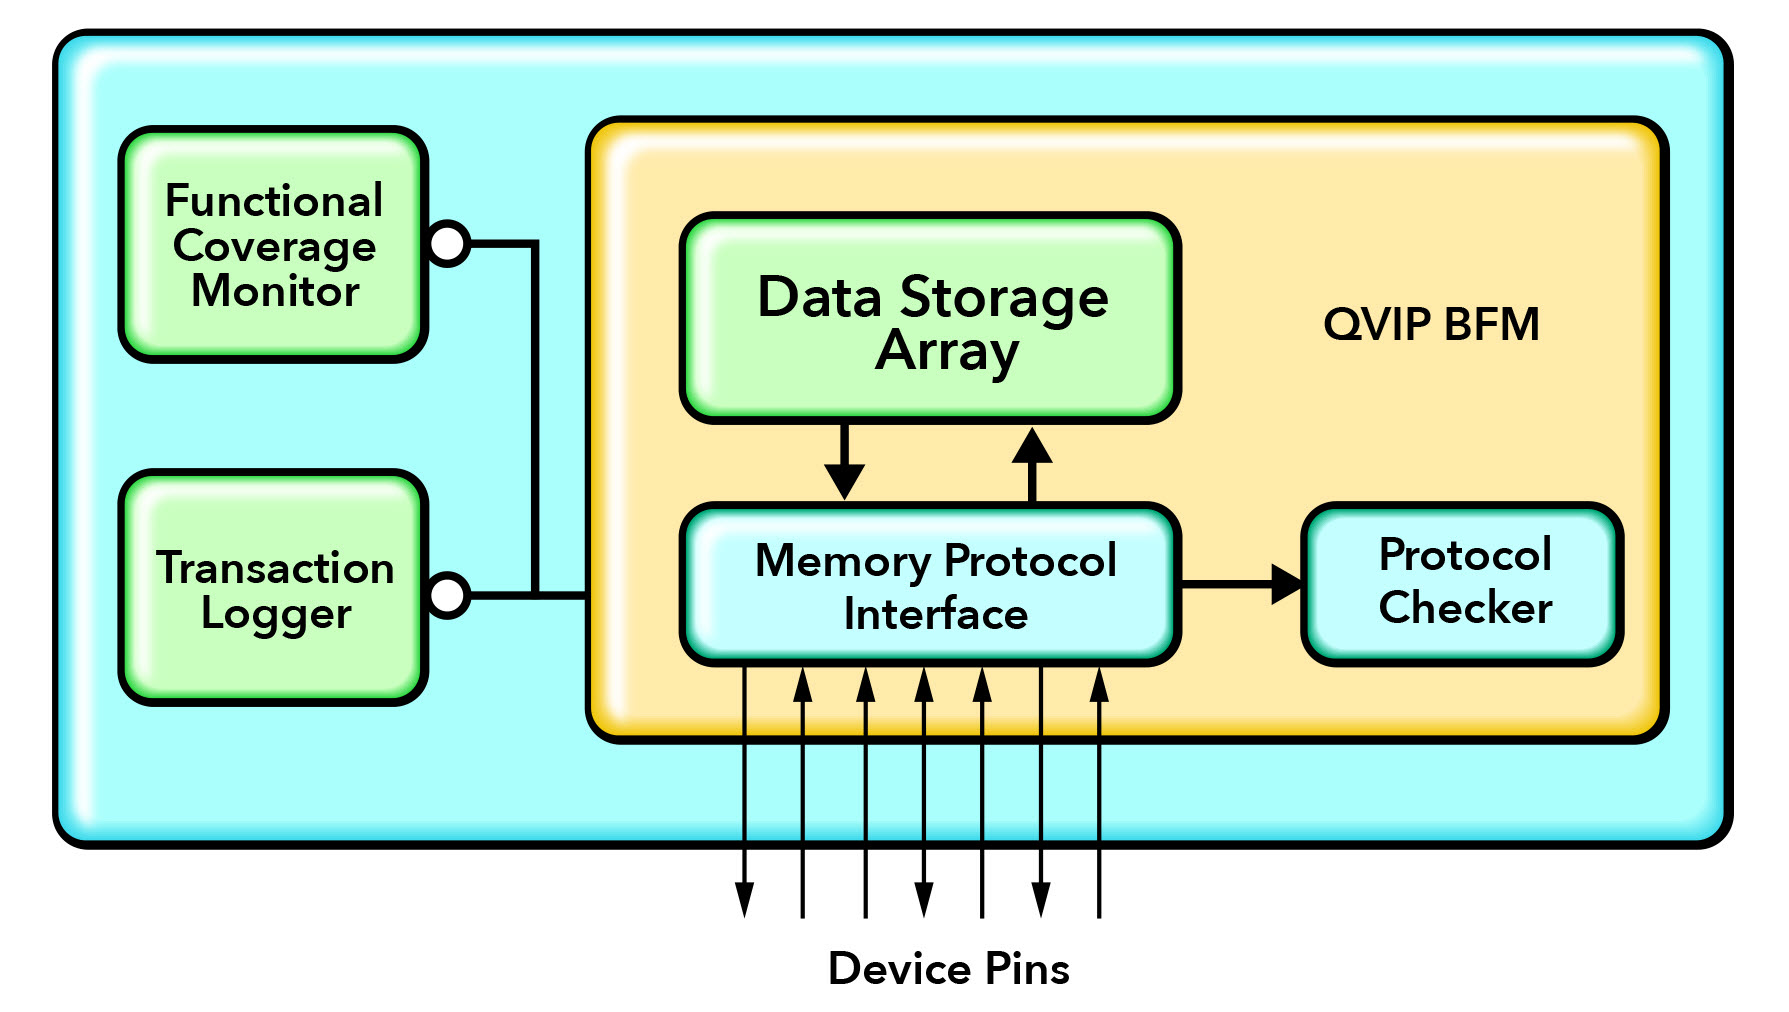 Figure 3. Model Generator memory model functional diagram